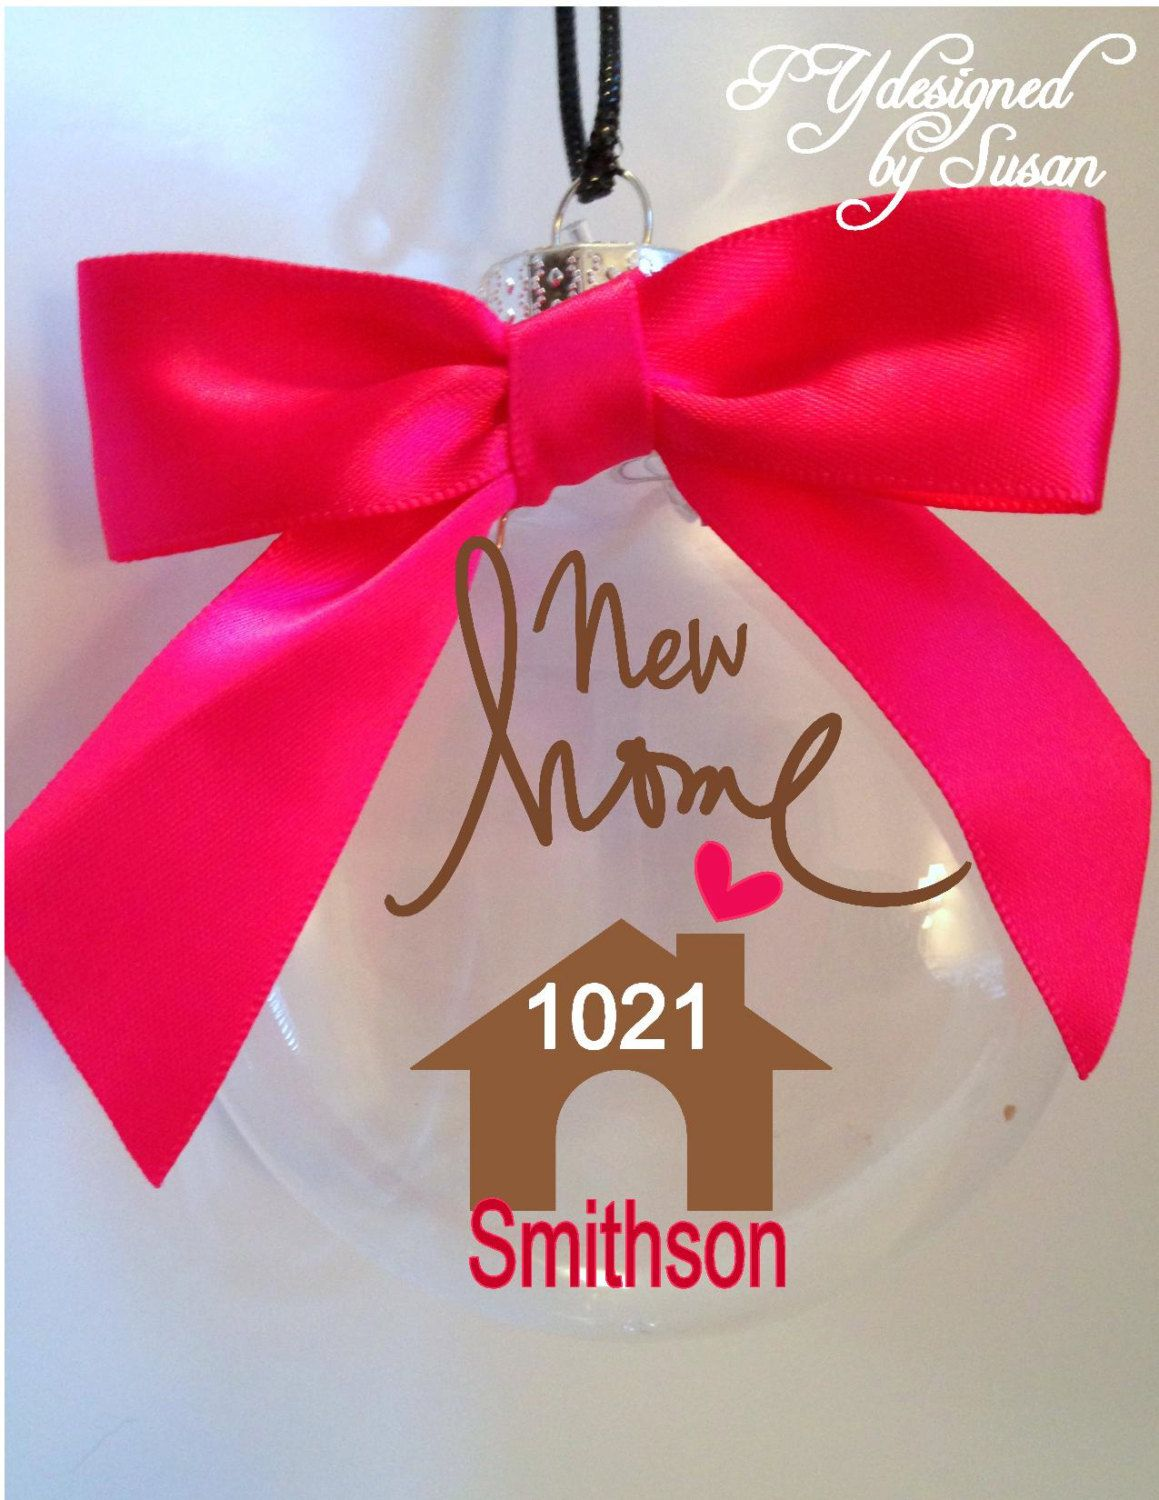 New home ornaments personalized - New Home Ornament Christmas Personalized With Gift Box By Pydesigned On Etsy